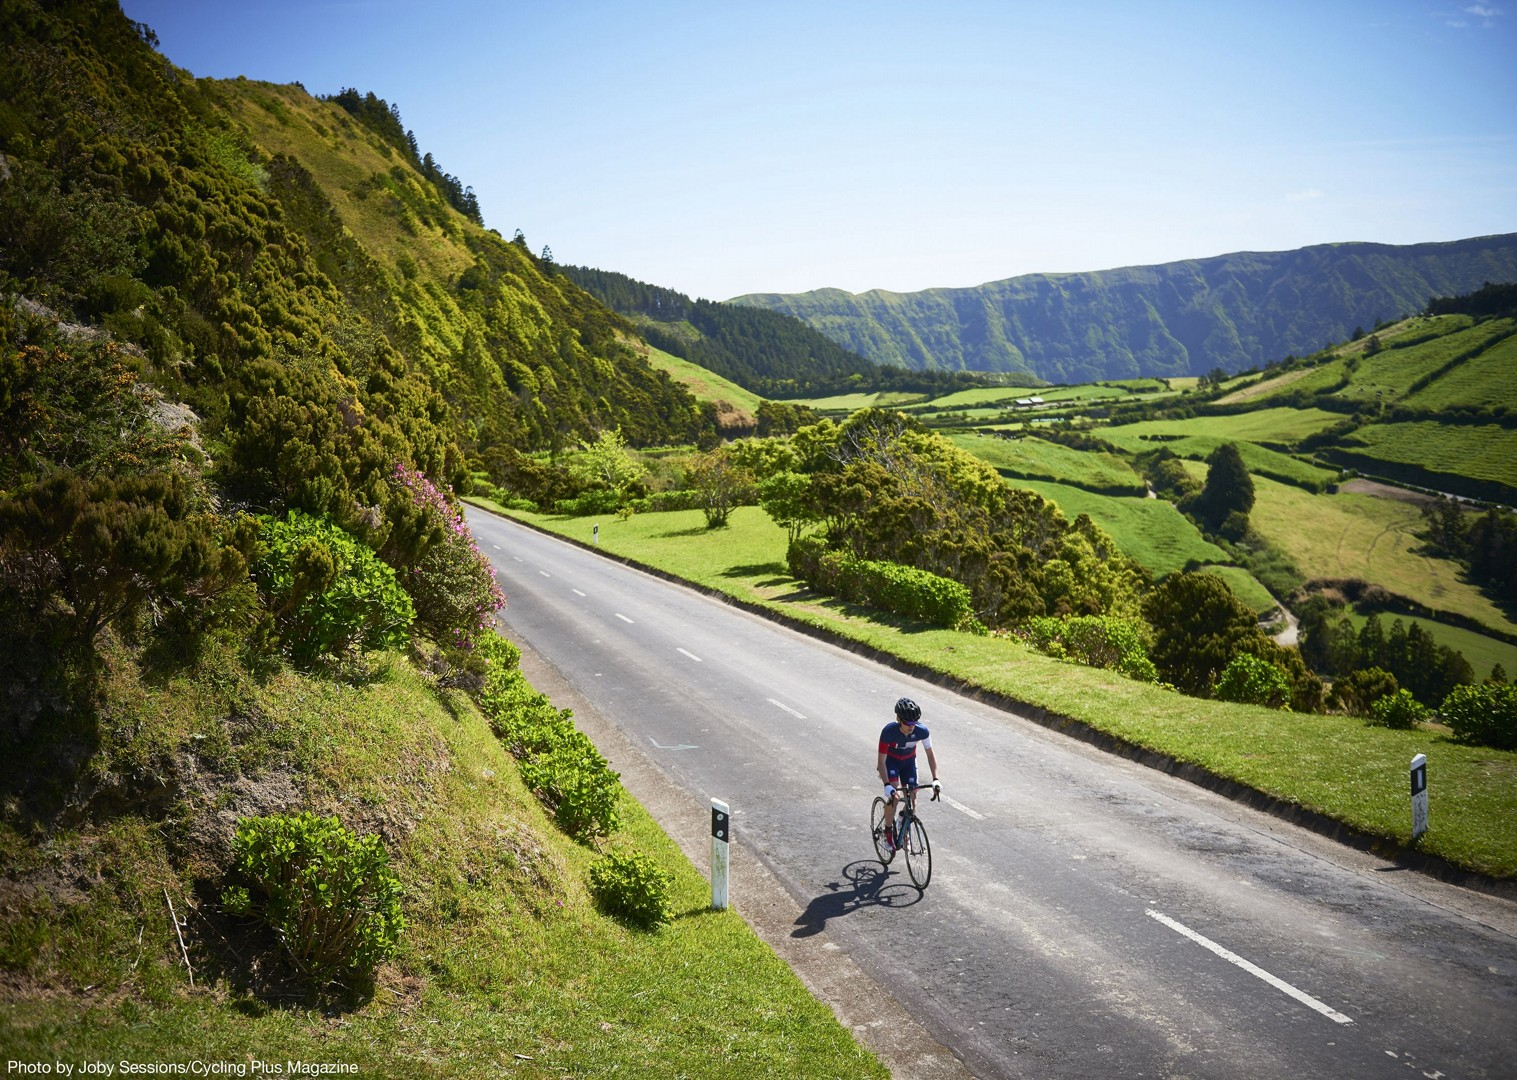 high-quality-luxurious-accommodation-road-cycling-holiday-the-azores.jpg - The Azores - Lost World of Sao Miguel - Road Cycling